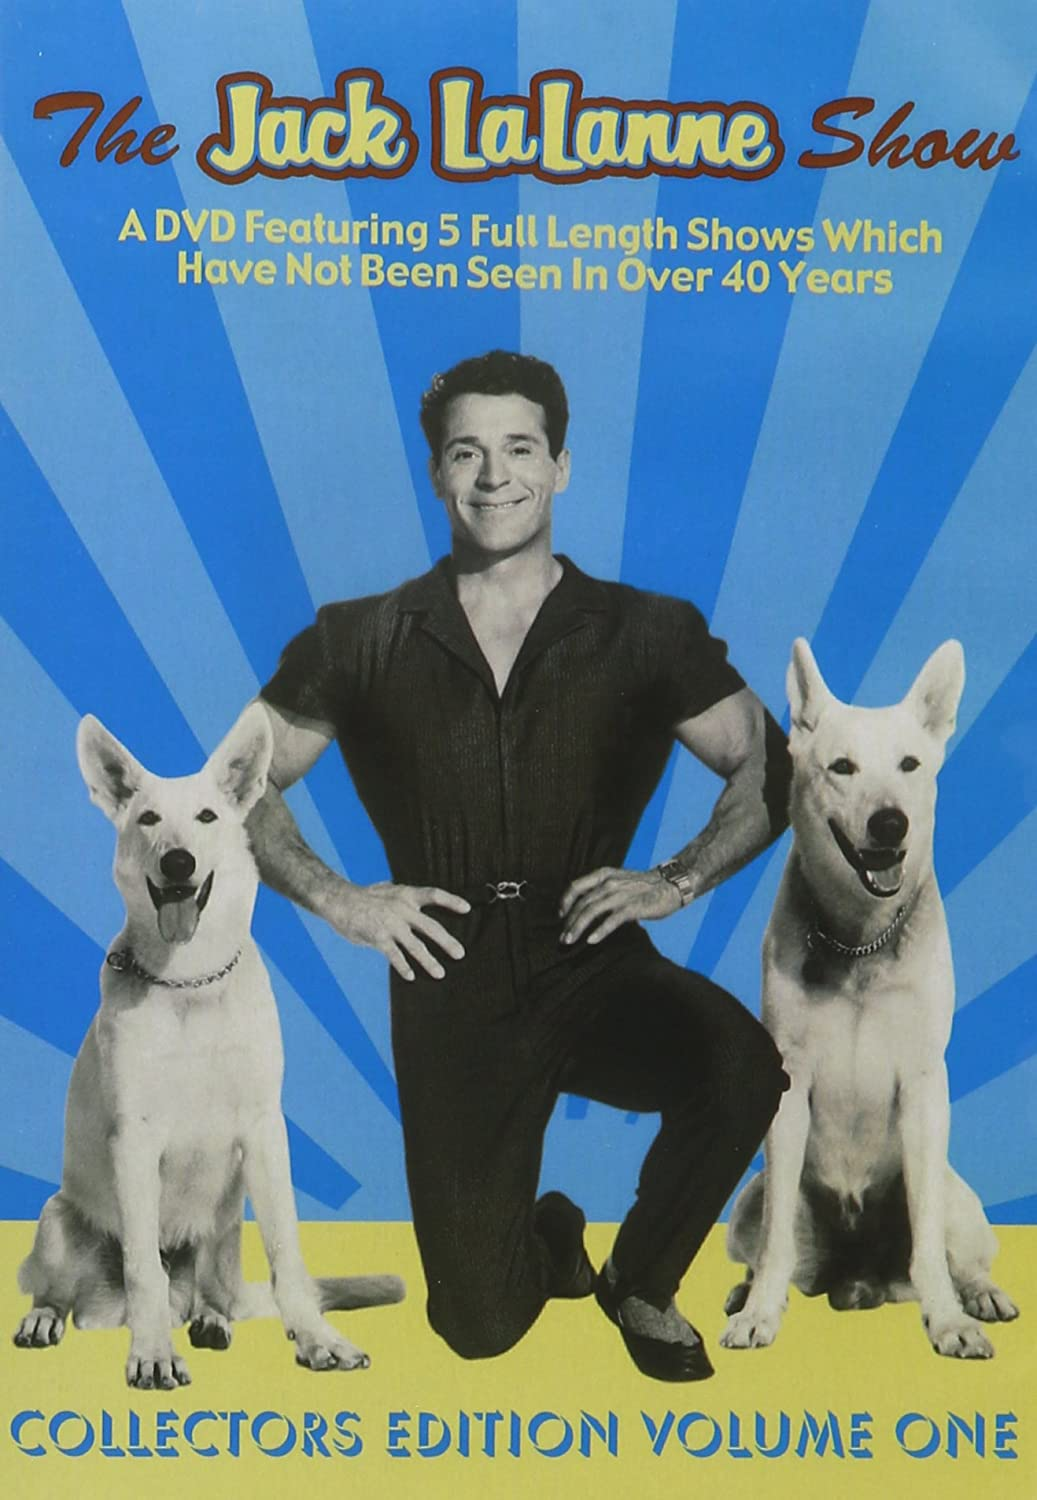 Amazon.com: The Jack LaLanne Show Collector's Edition Volume 1 ...